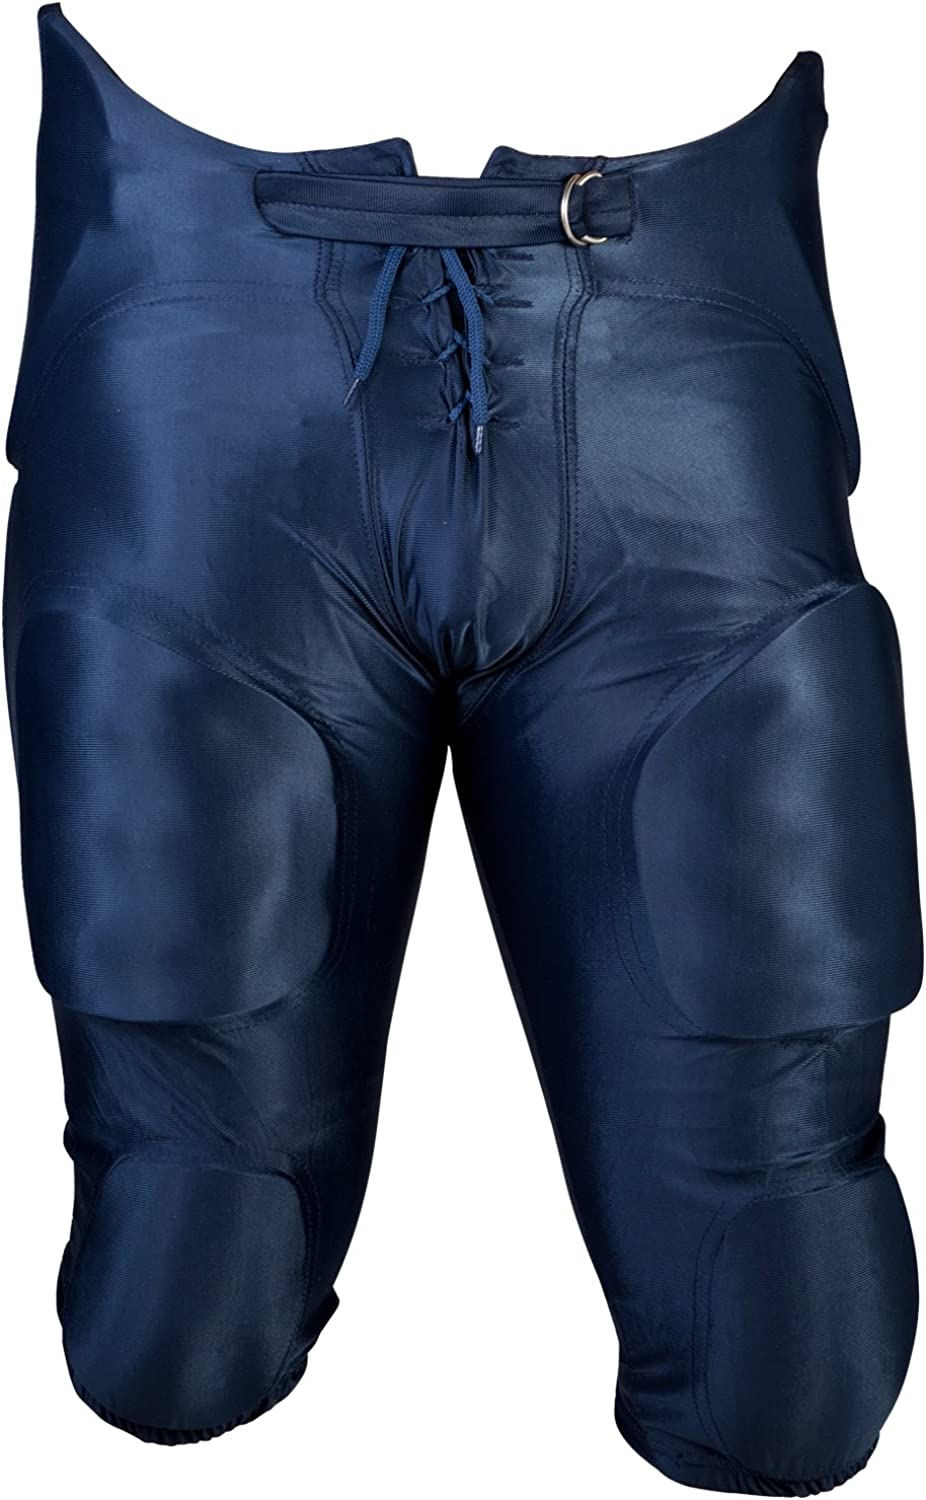 Cramer Football Game Pants, 7 Pad, Adult Size, Assorted Colors : Clothing